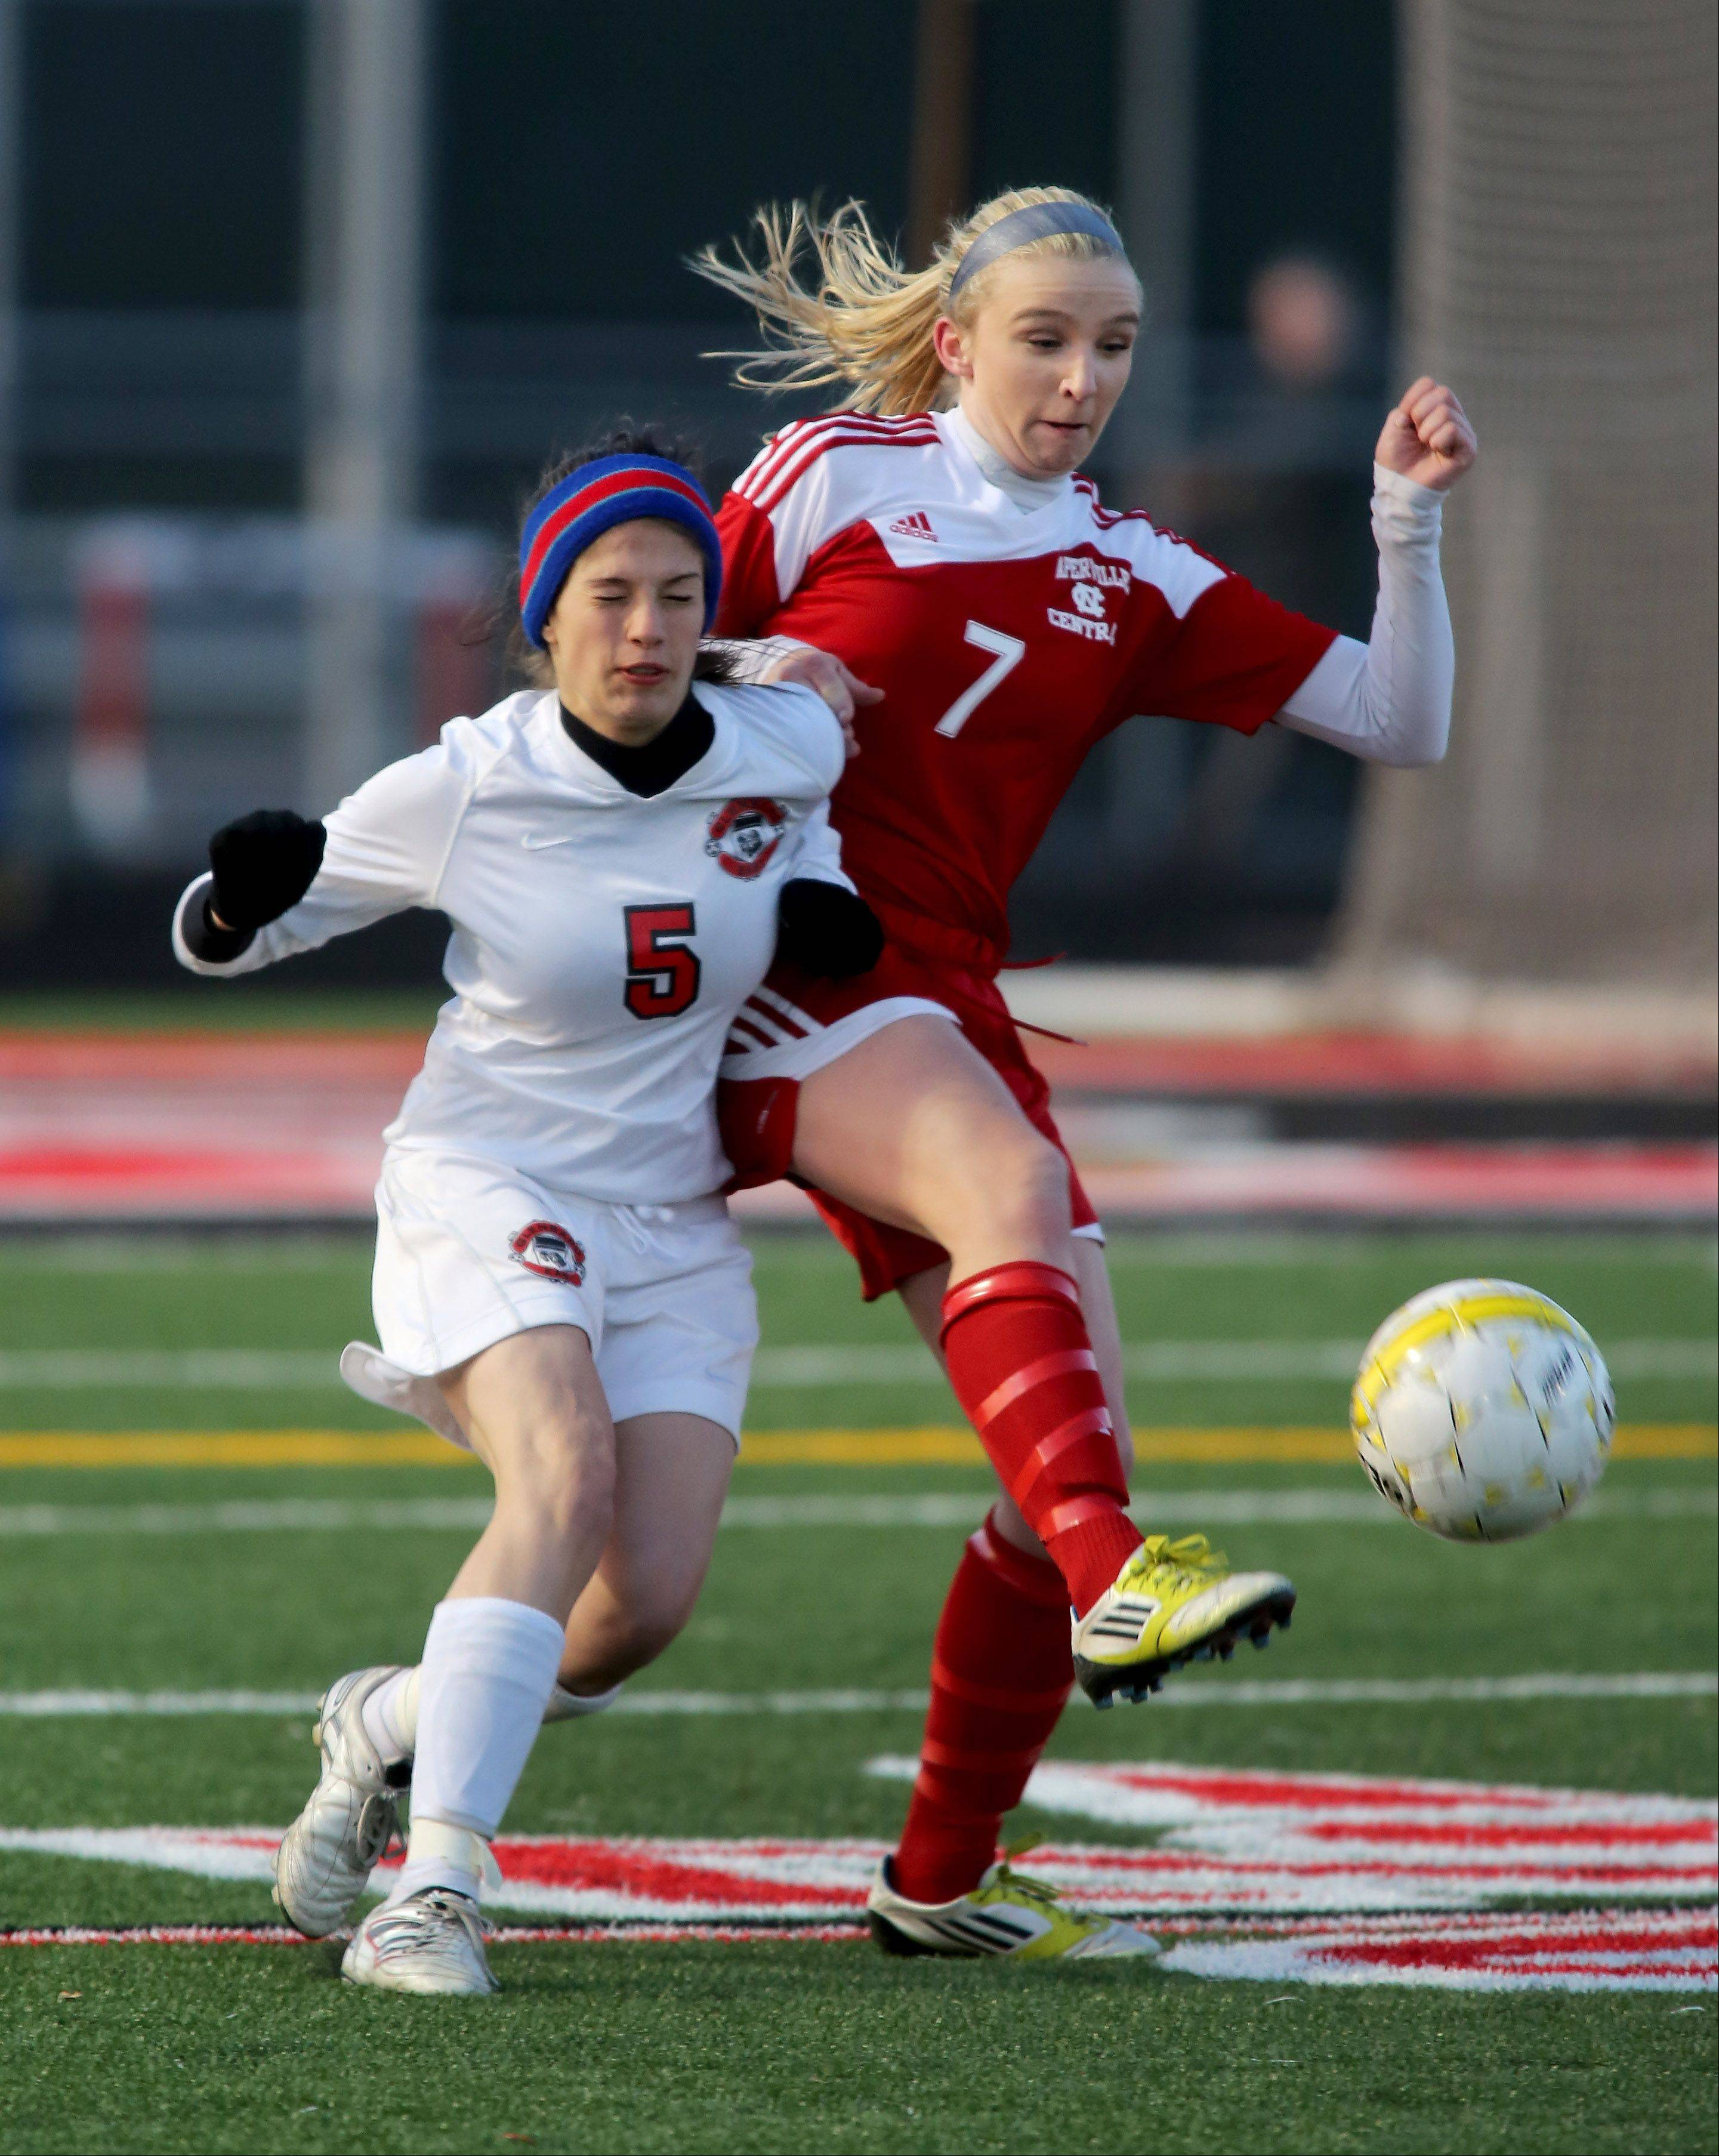 Kellie Brooks of Naperville Central, right, passes the ball away from Nicole Alfaro of Glenbard East during girls soccer on Tuesday in Lombard.